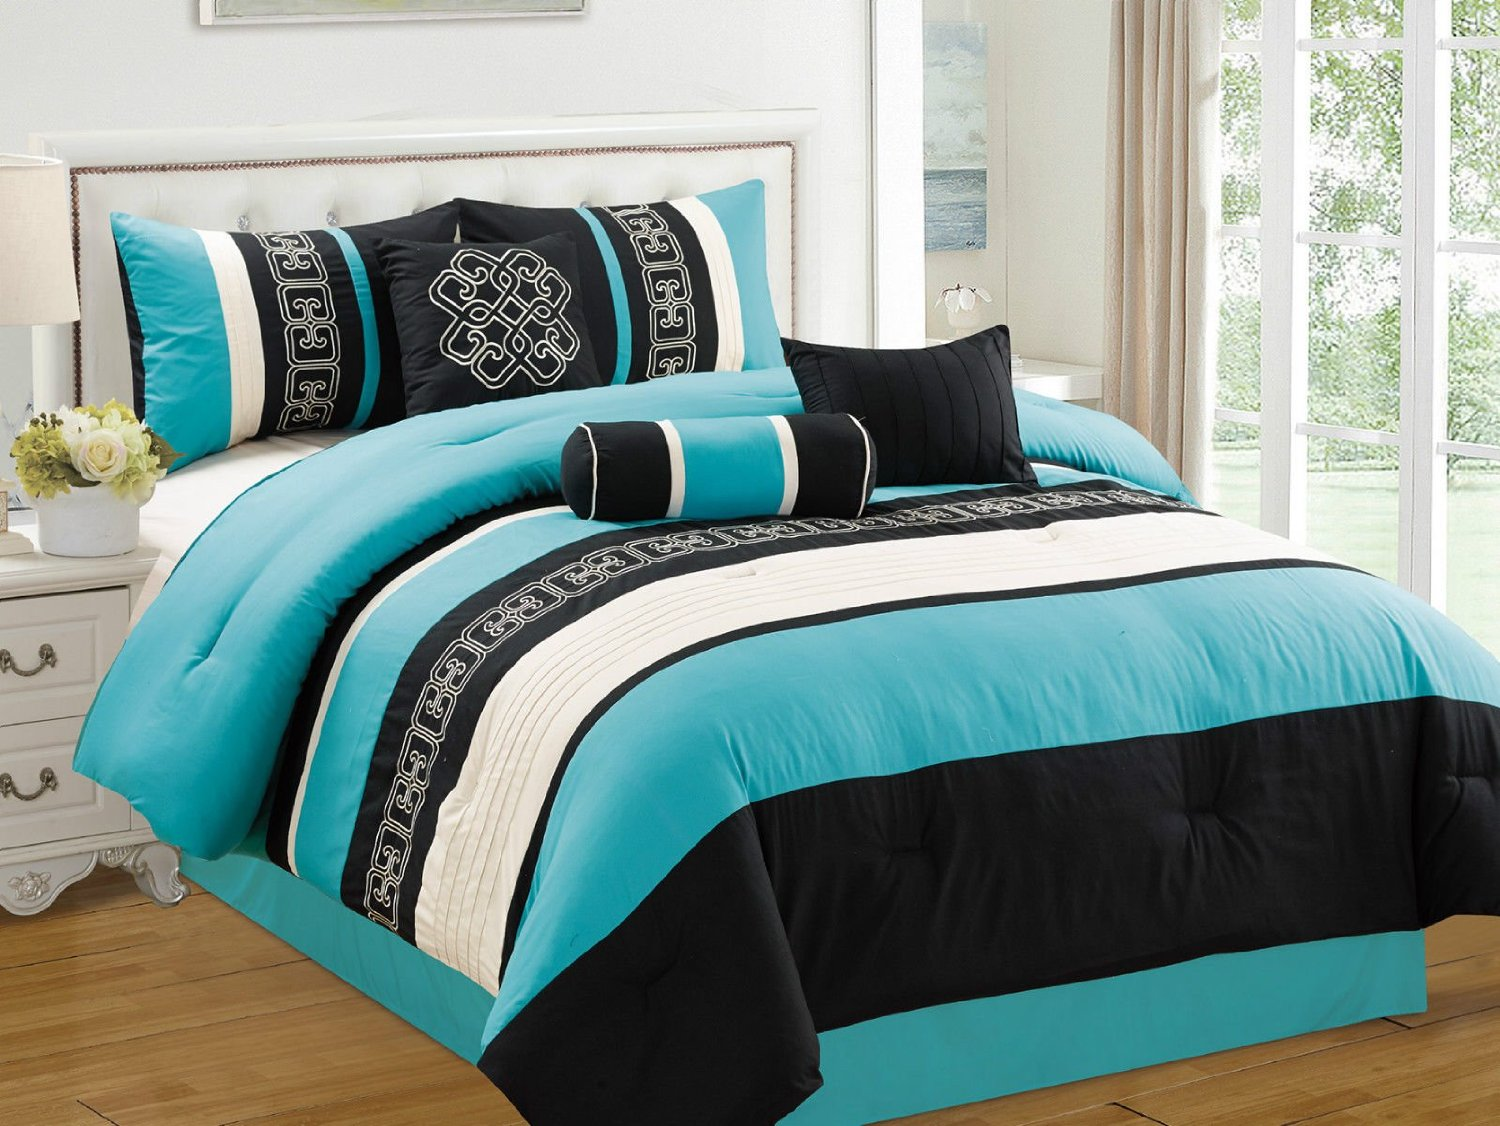 Black, White and Turquoise Bedding Sets